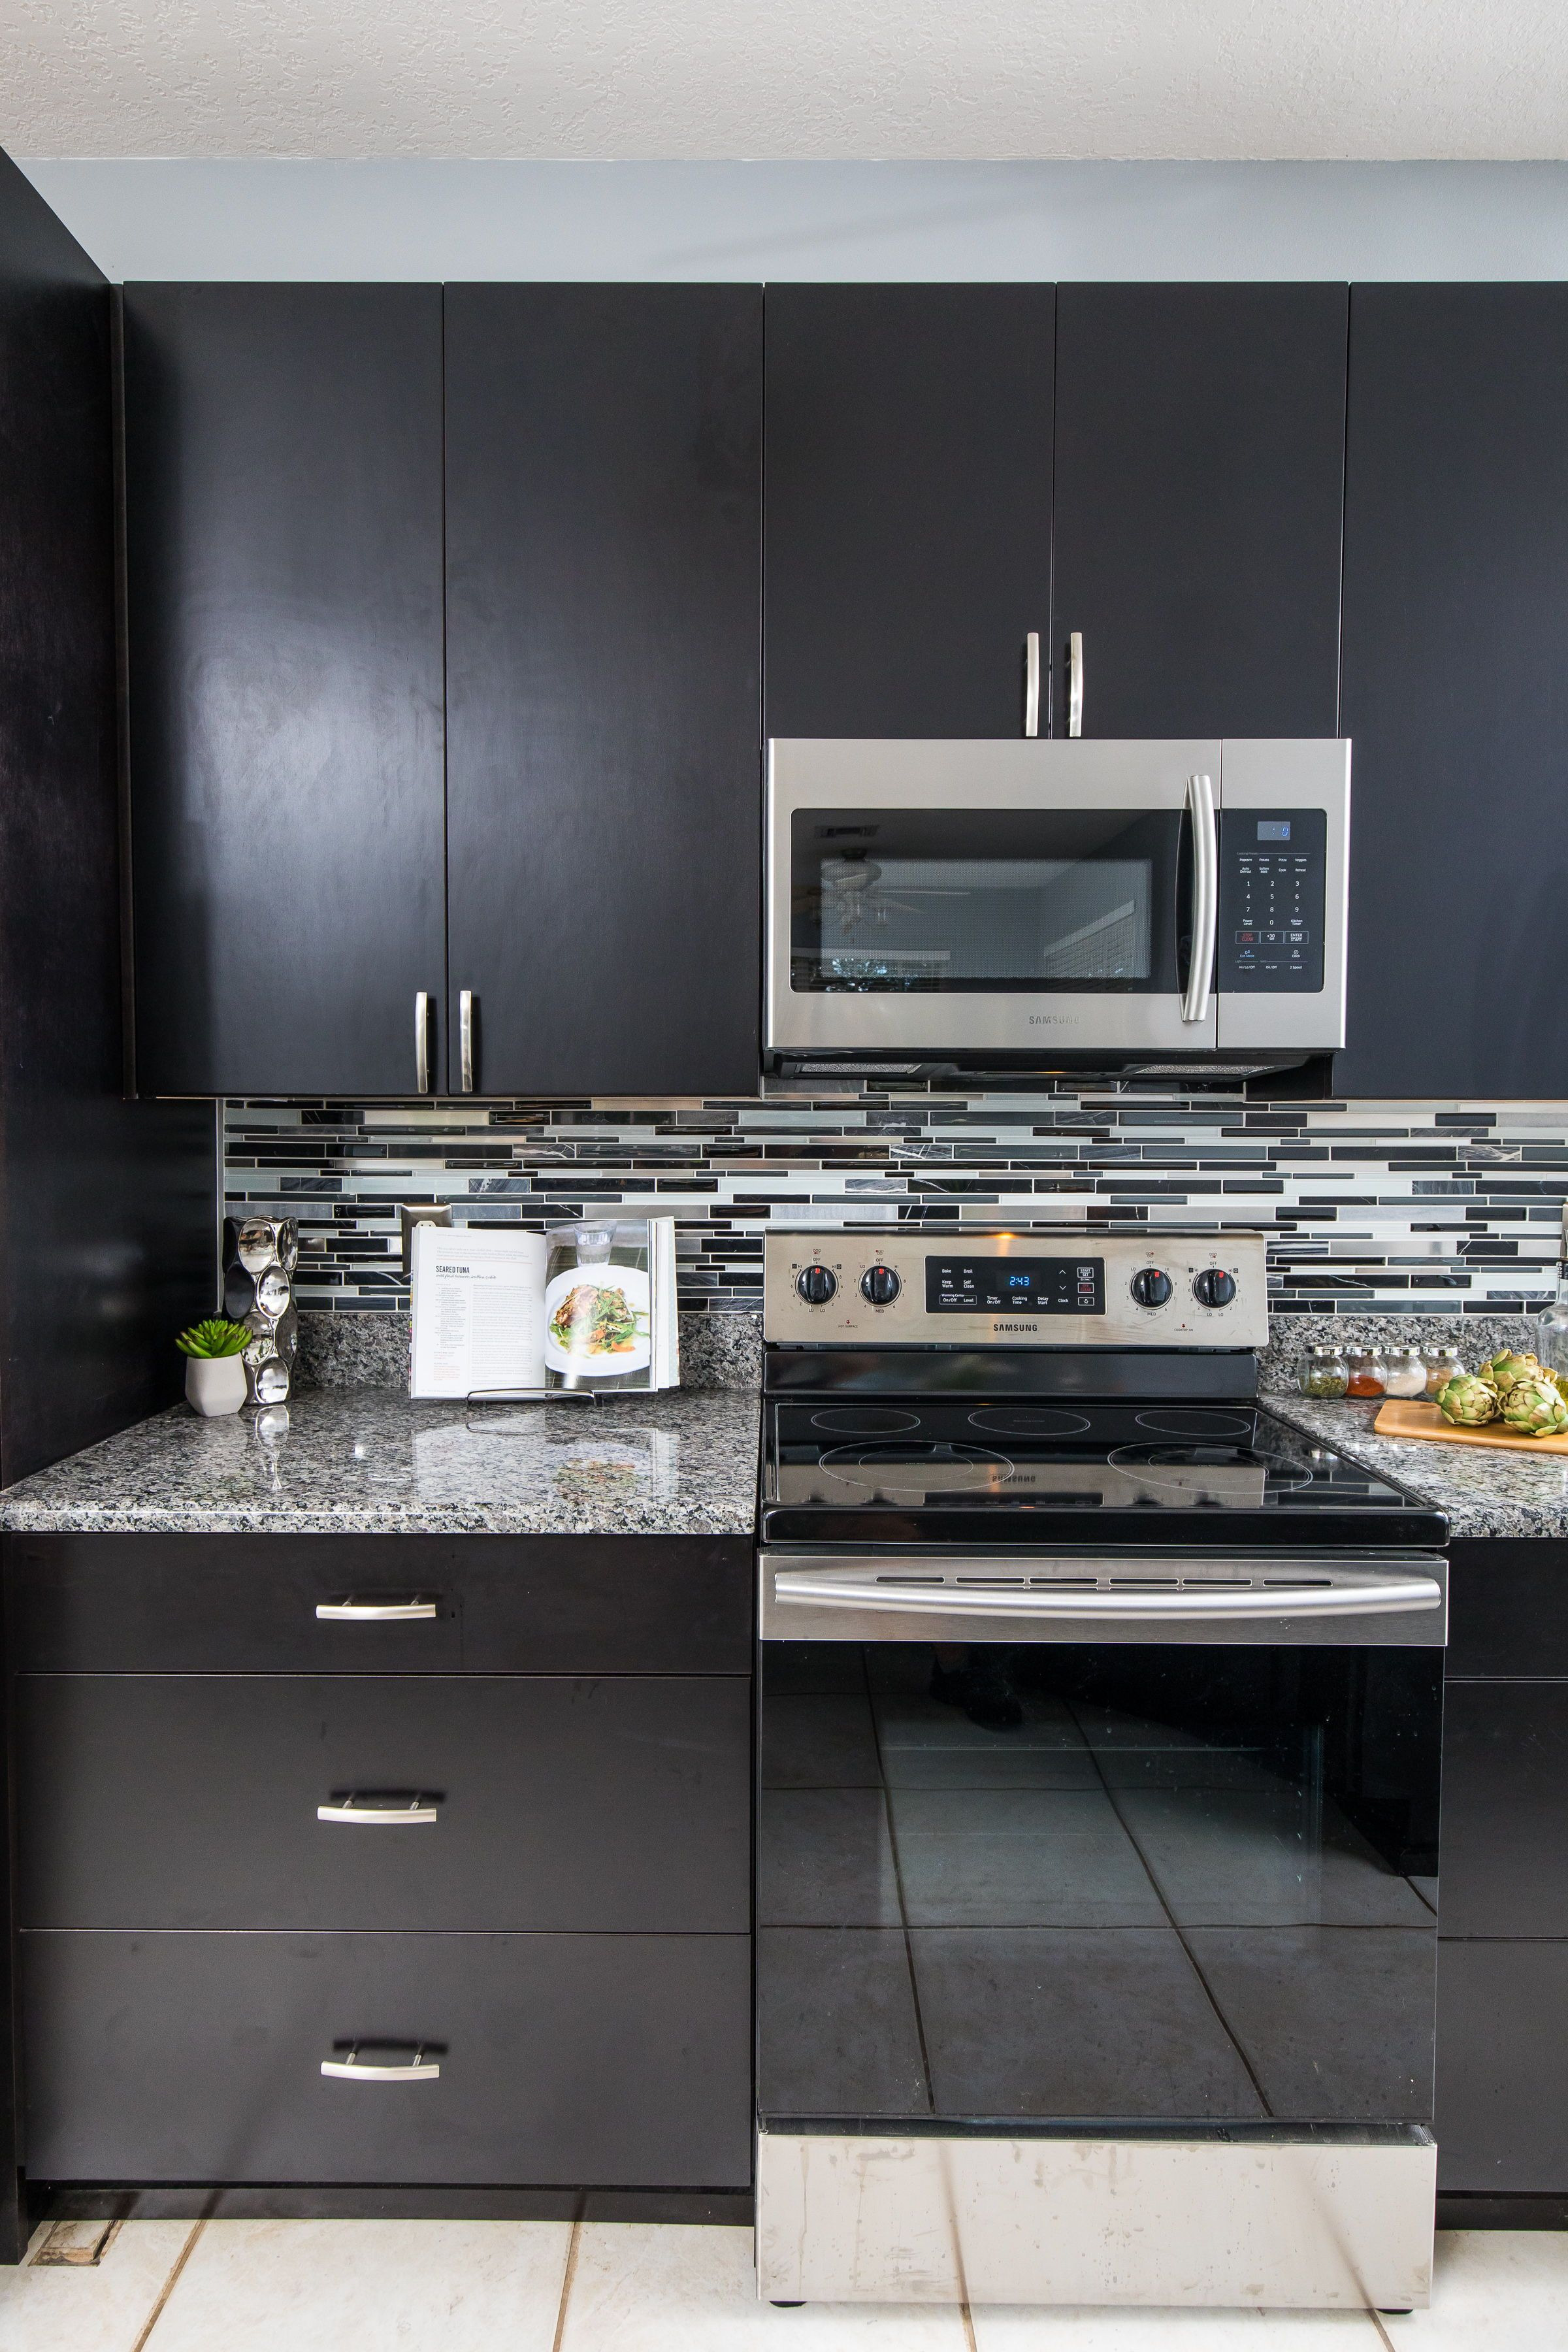 Slab Door Kitchen Cabinets Awesome Dark Stained Slab Door Cabinets with A Linear Glass